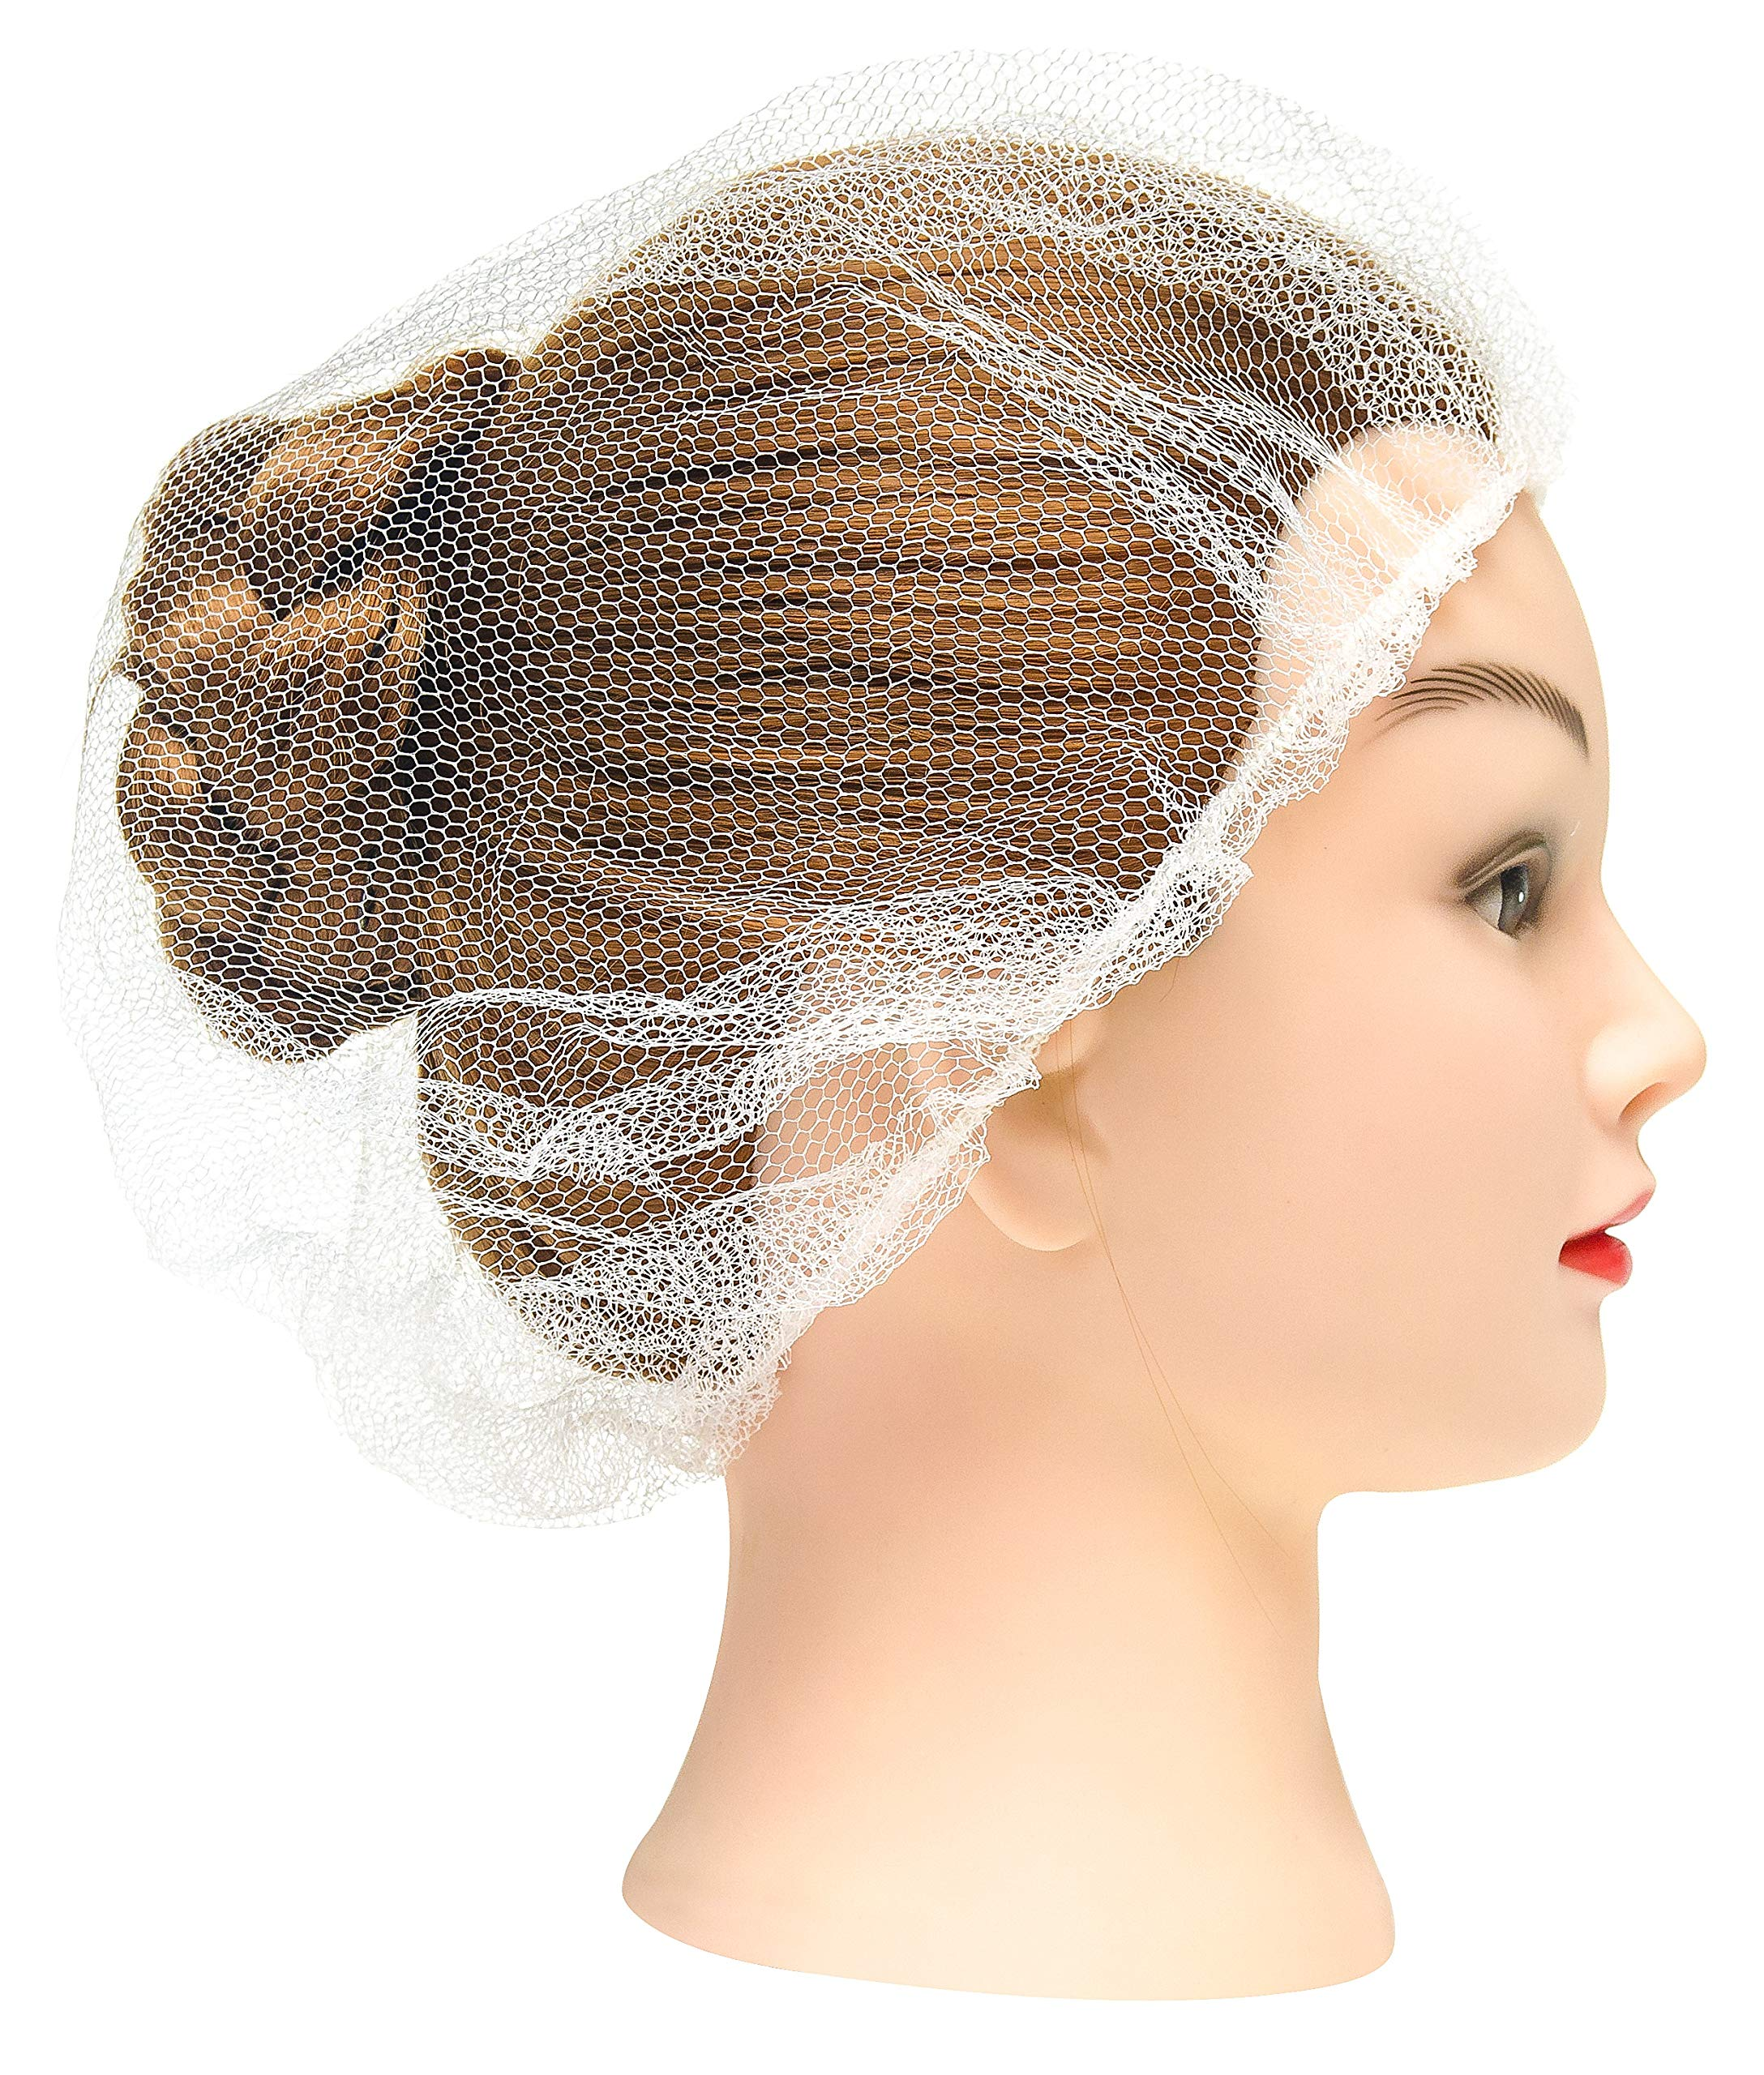 100 Pack White Nylon Hairnets 18'' Size. Disposable white hairnets. Protective Hair Nets with Elastic Edge Mesh. Stretchable Hairnet Caps for Non-Medical Use. Lightweight, Breathable. Wholesale price. by ABC Pack & Supply